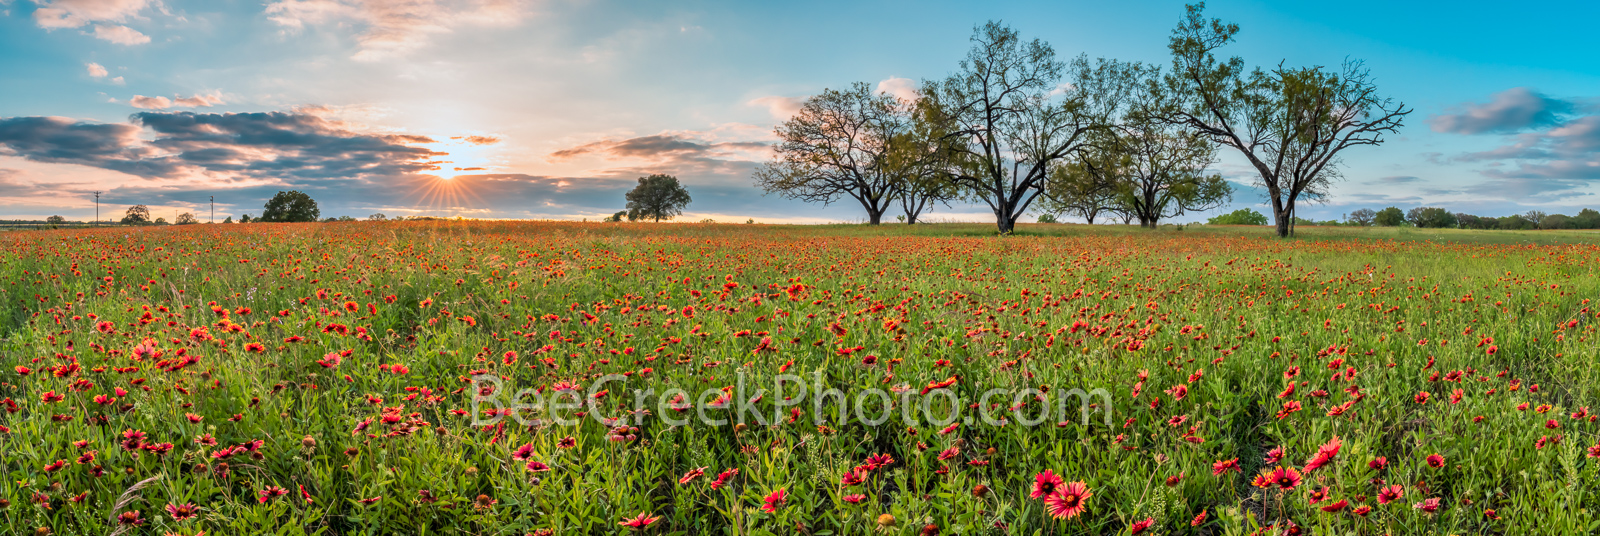 Firewheels Wildflowers at Sunset Pano - A field of Texas firewheels, also called indian blankets with some mequite trees right...